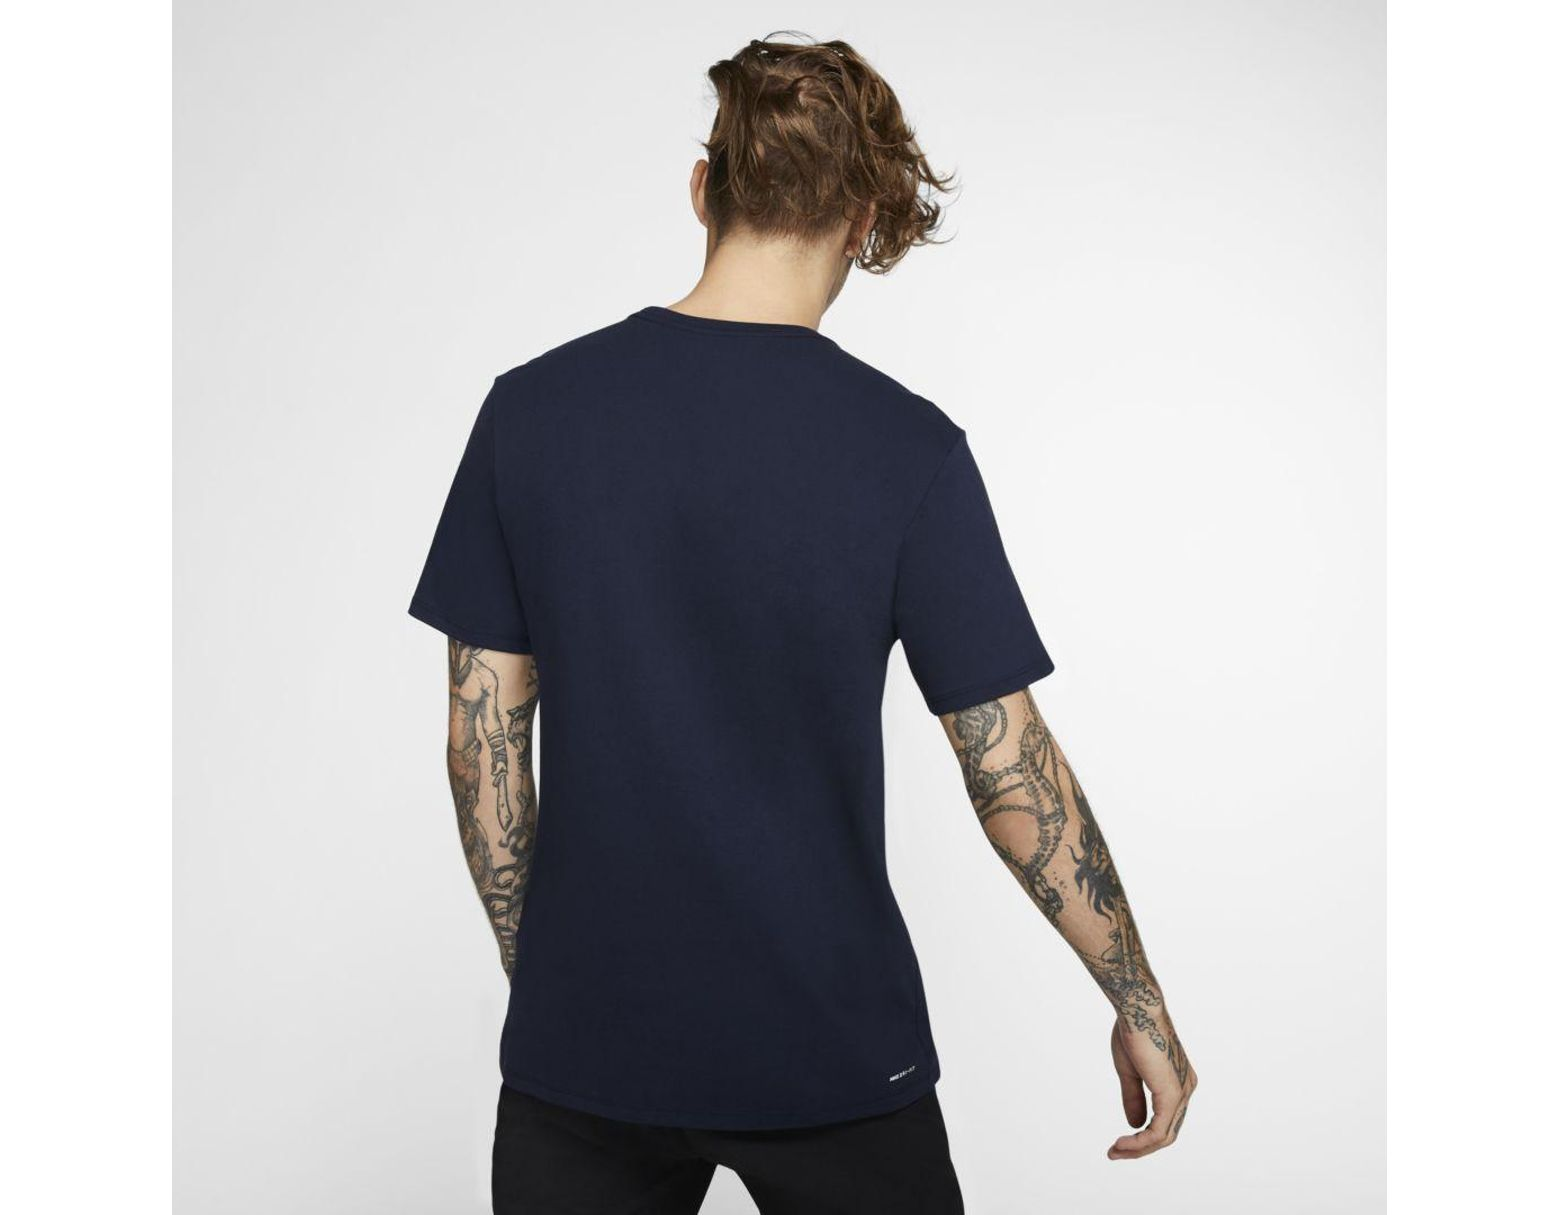 6226d14179 Nike Hurley Dri-fit Interval Premium Fit T-shirt in Blue for Men - Lyst